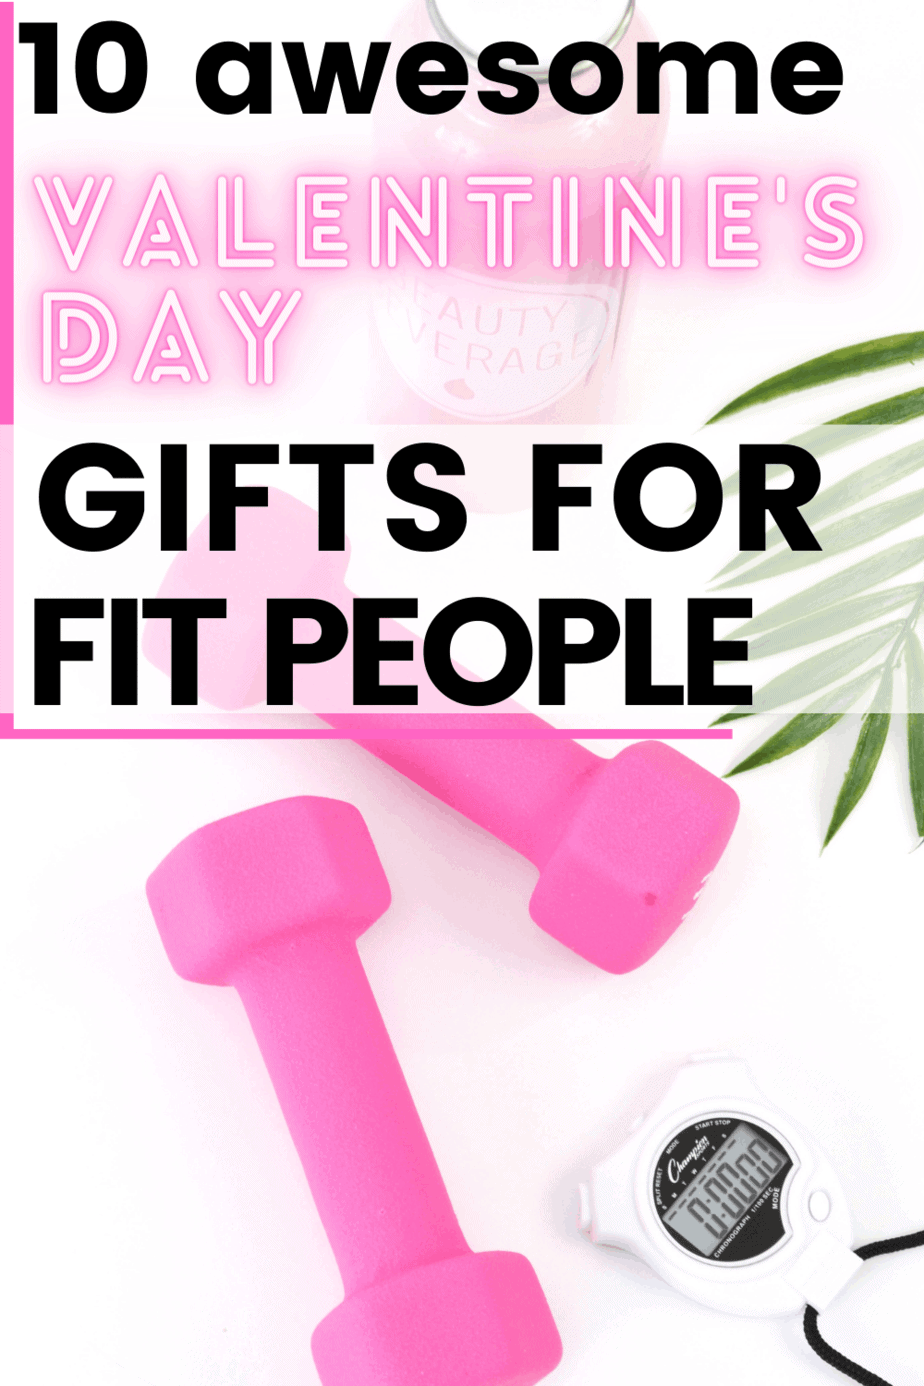 Valentine's Day Gifts and Gear For the Fitness Lover